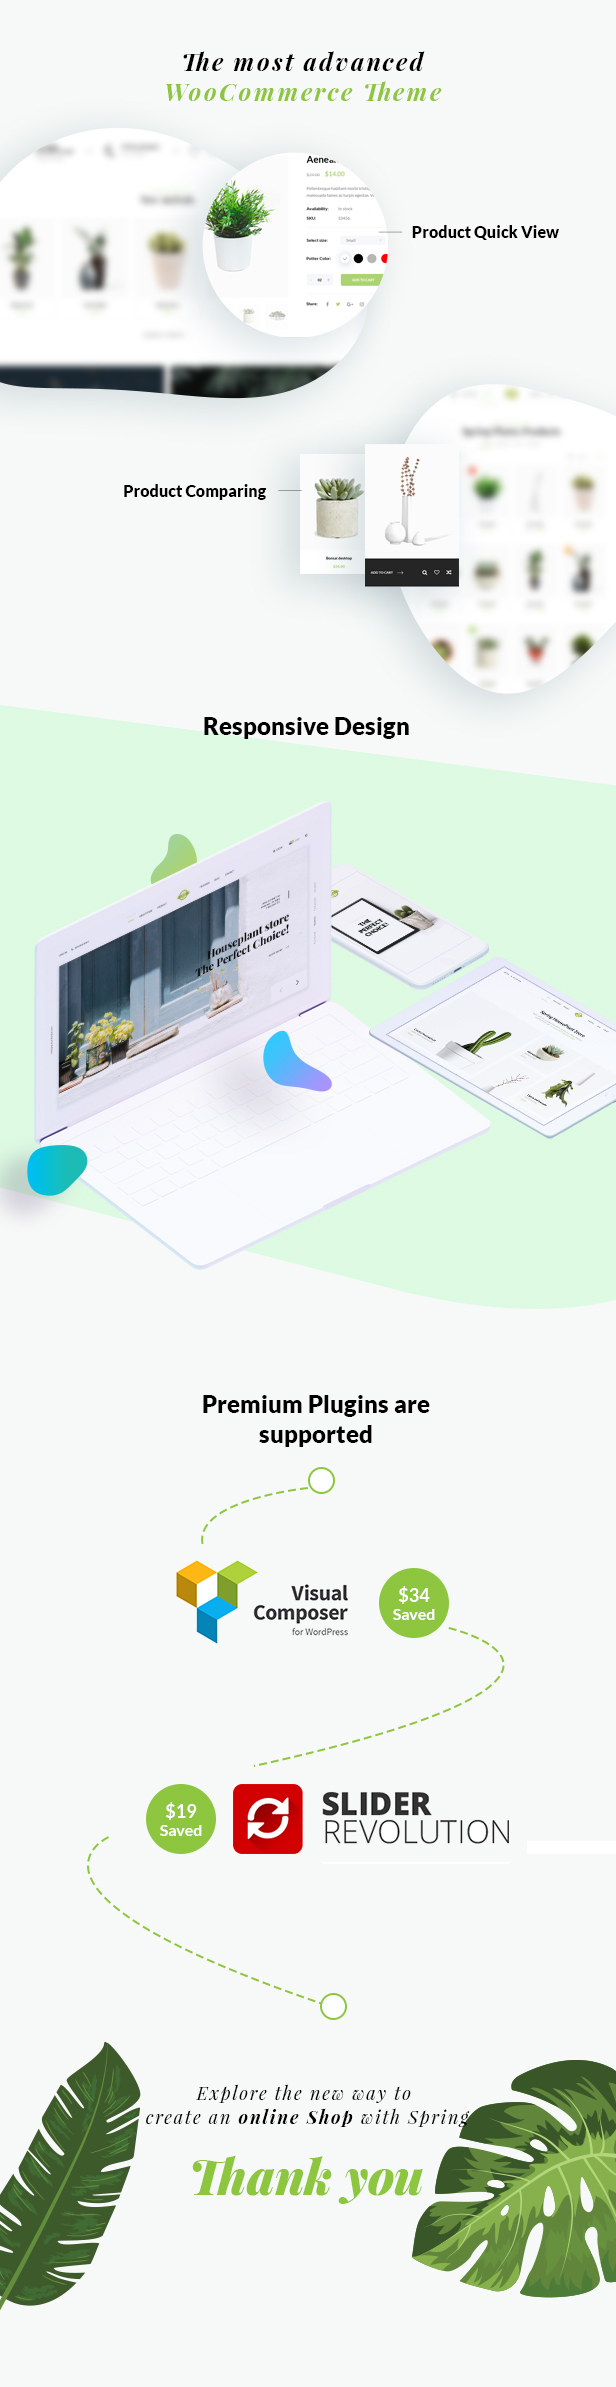 Spring Plants - Gardening & Houseplants WordPress Theme - 12